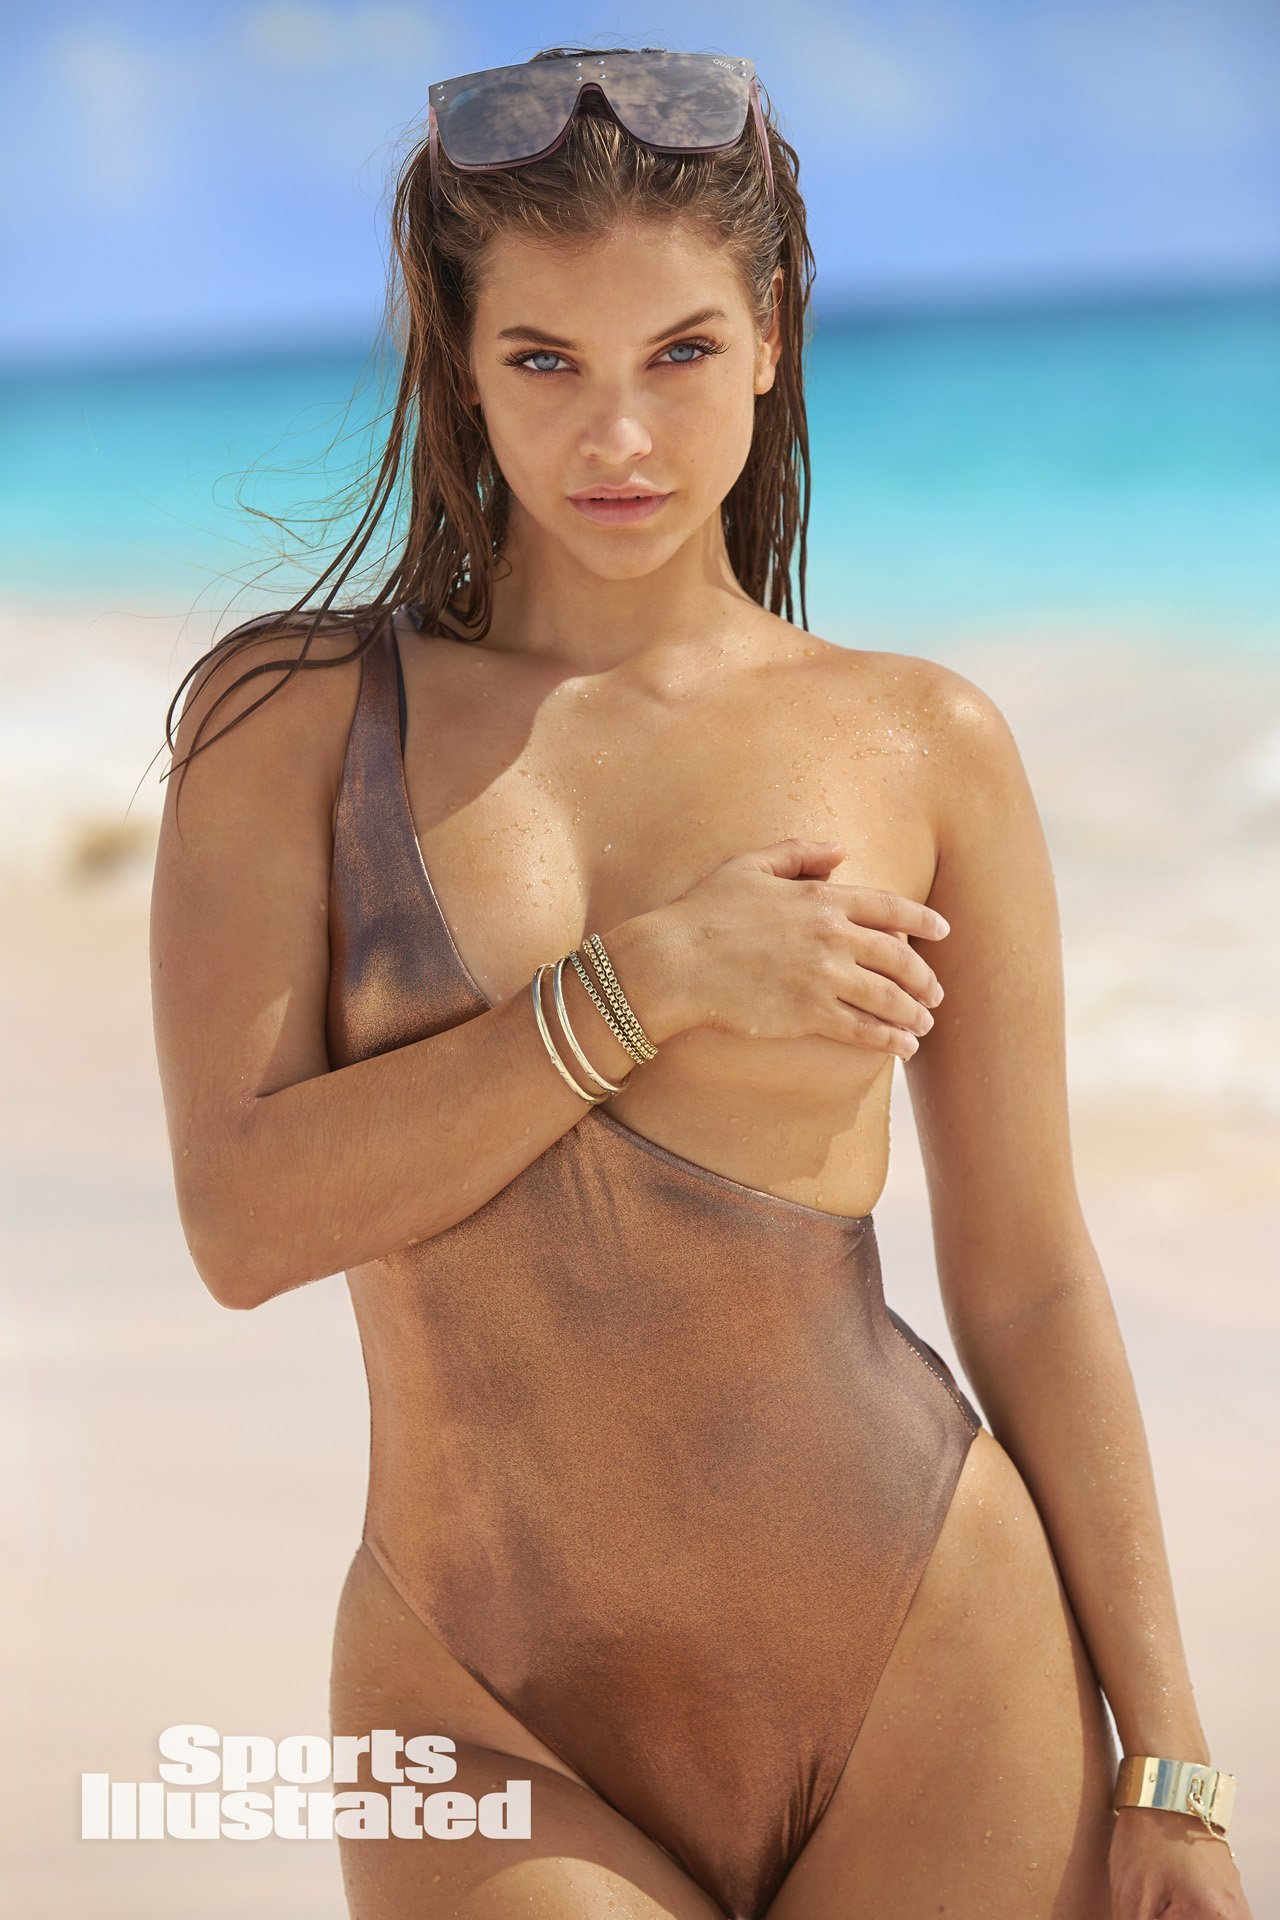 Barbara Palvin - Sports Illustrated Swimsuit Issue (2018)